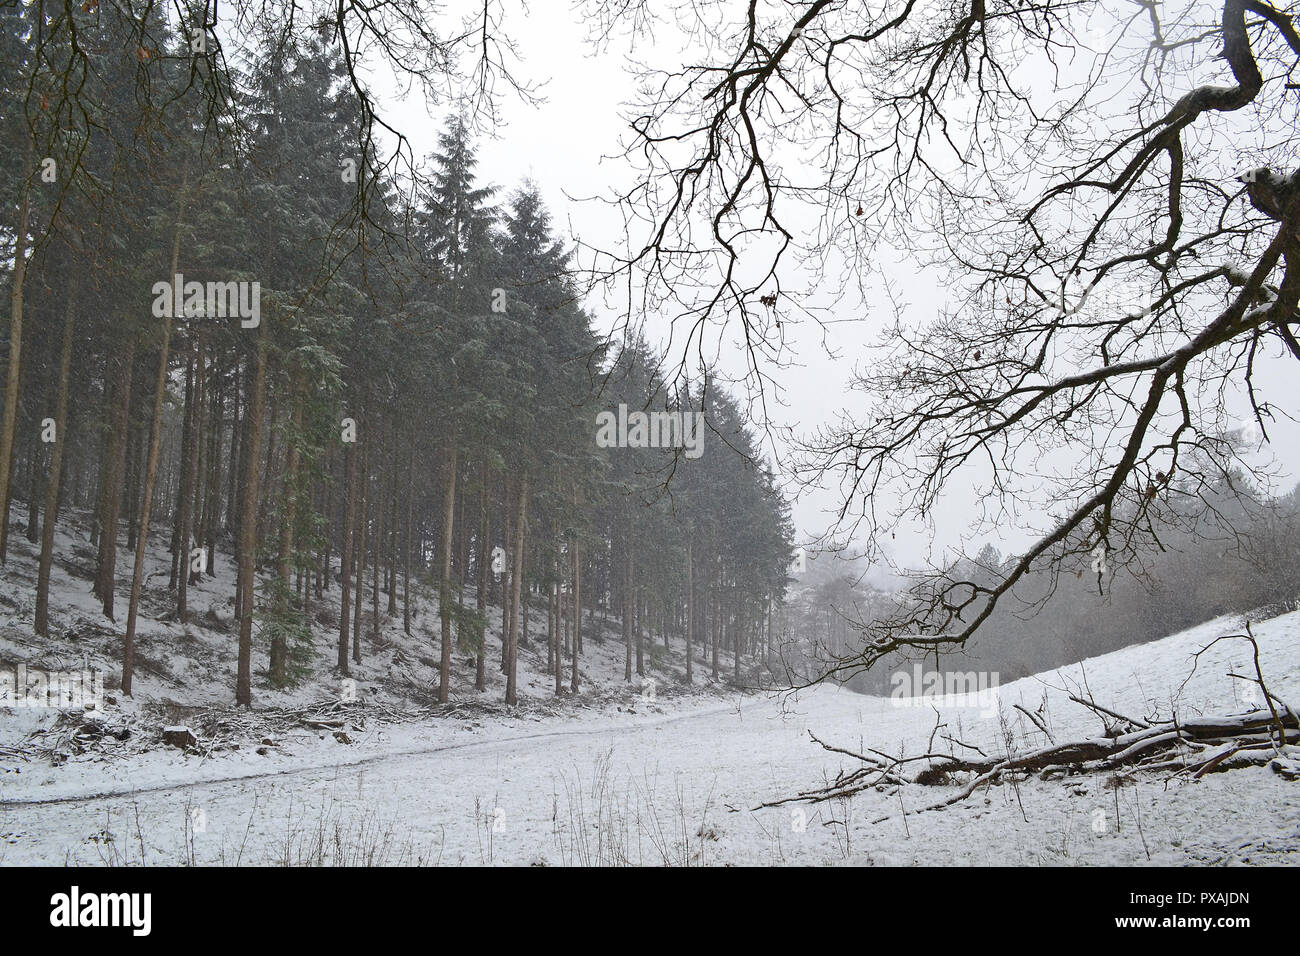 Late March 2018, snowfall on North Downs between Westerham and Chartwell, home of Winston Churchill - Stock Image